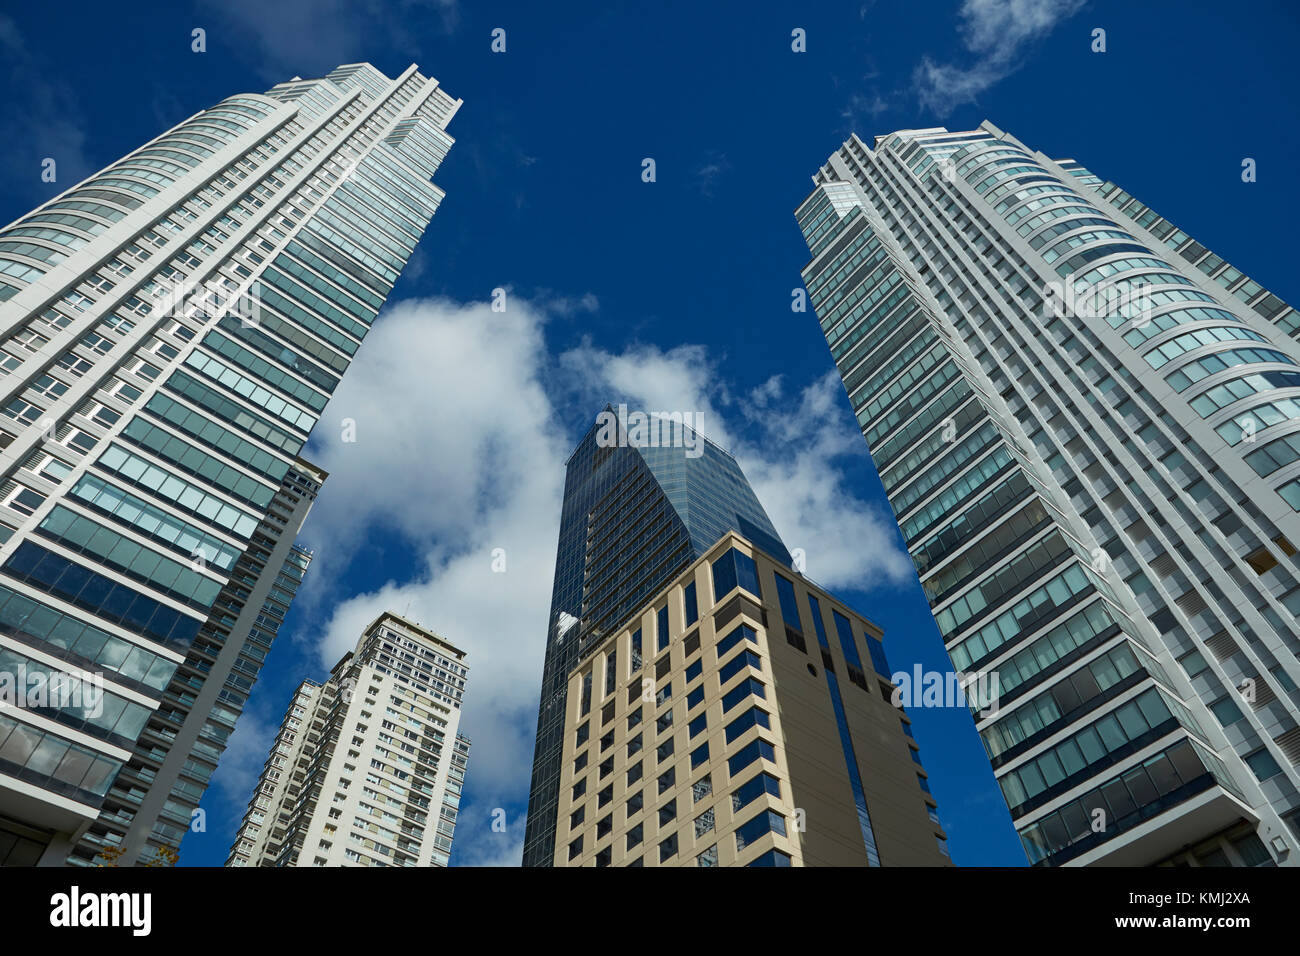 Tower blocks, Puerto Madero, Buenos Aires, Argentina, South America - Stock Image